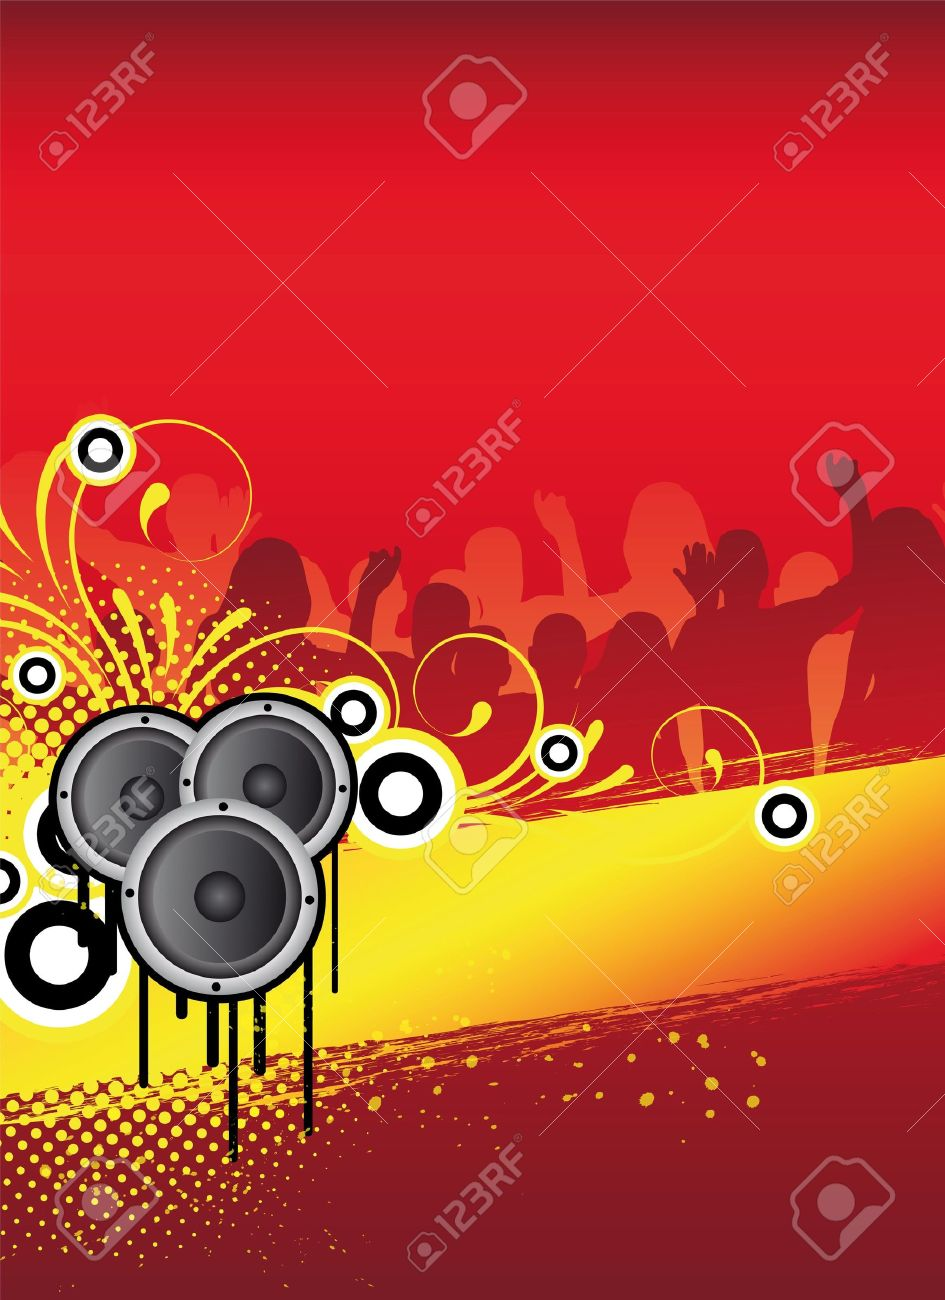 Red Abstract Party Flyer Design With Dancing People Stock Photo ...